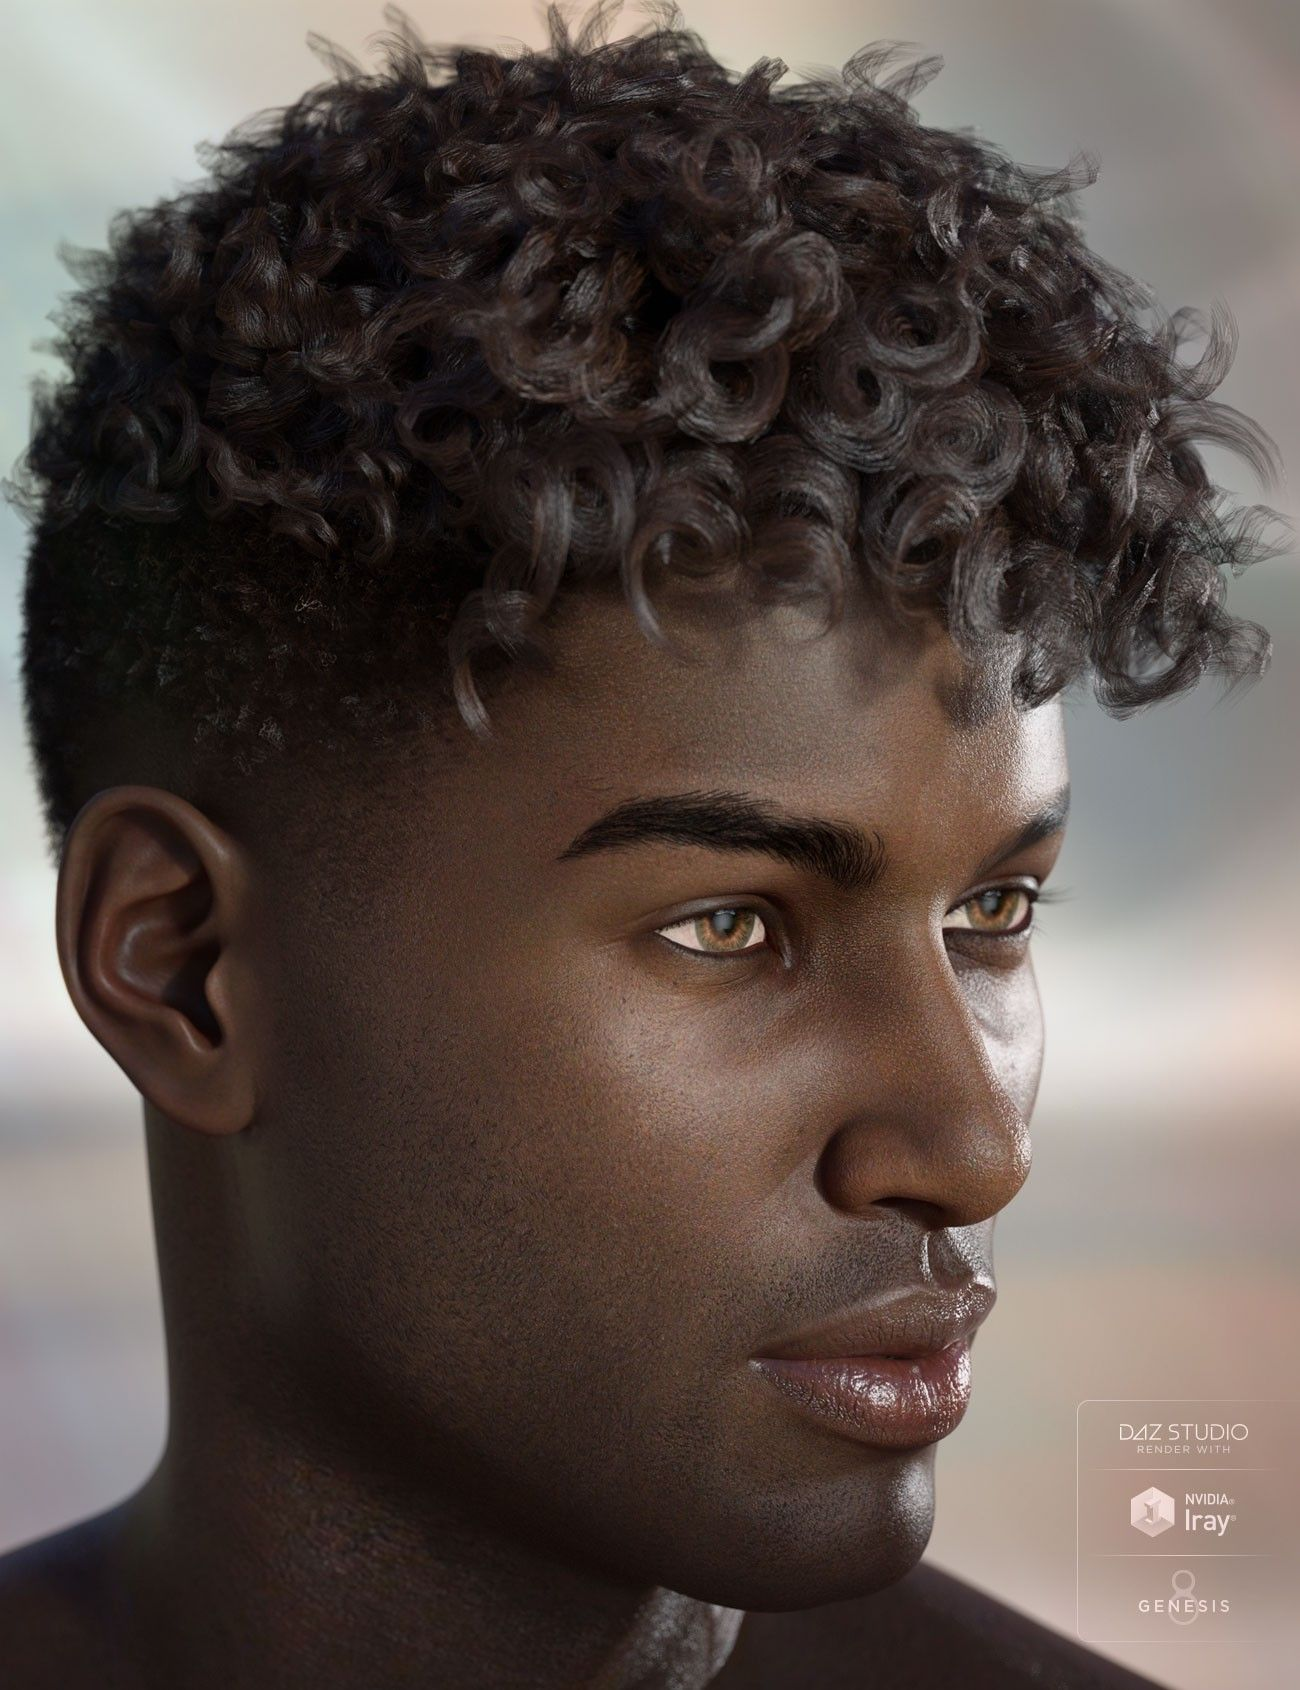 Black Hunk Green Eyes Render Tight Curly Hair Curly Perm Mens Hairstyles